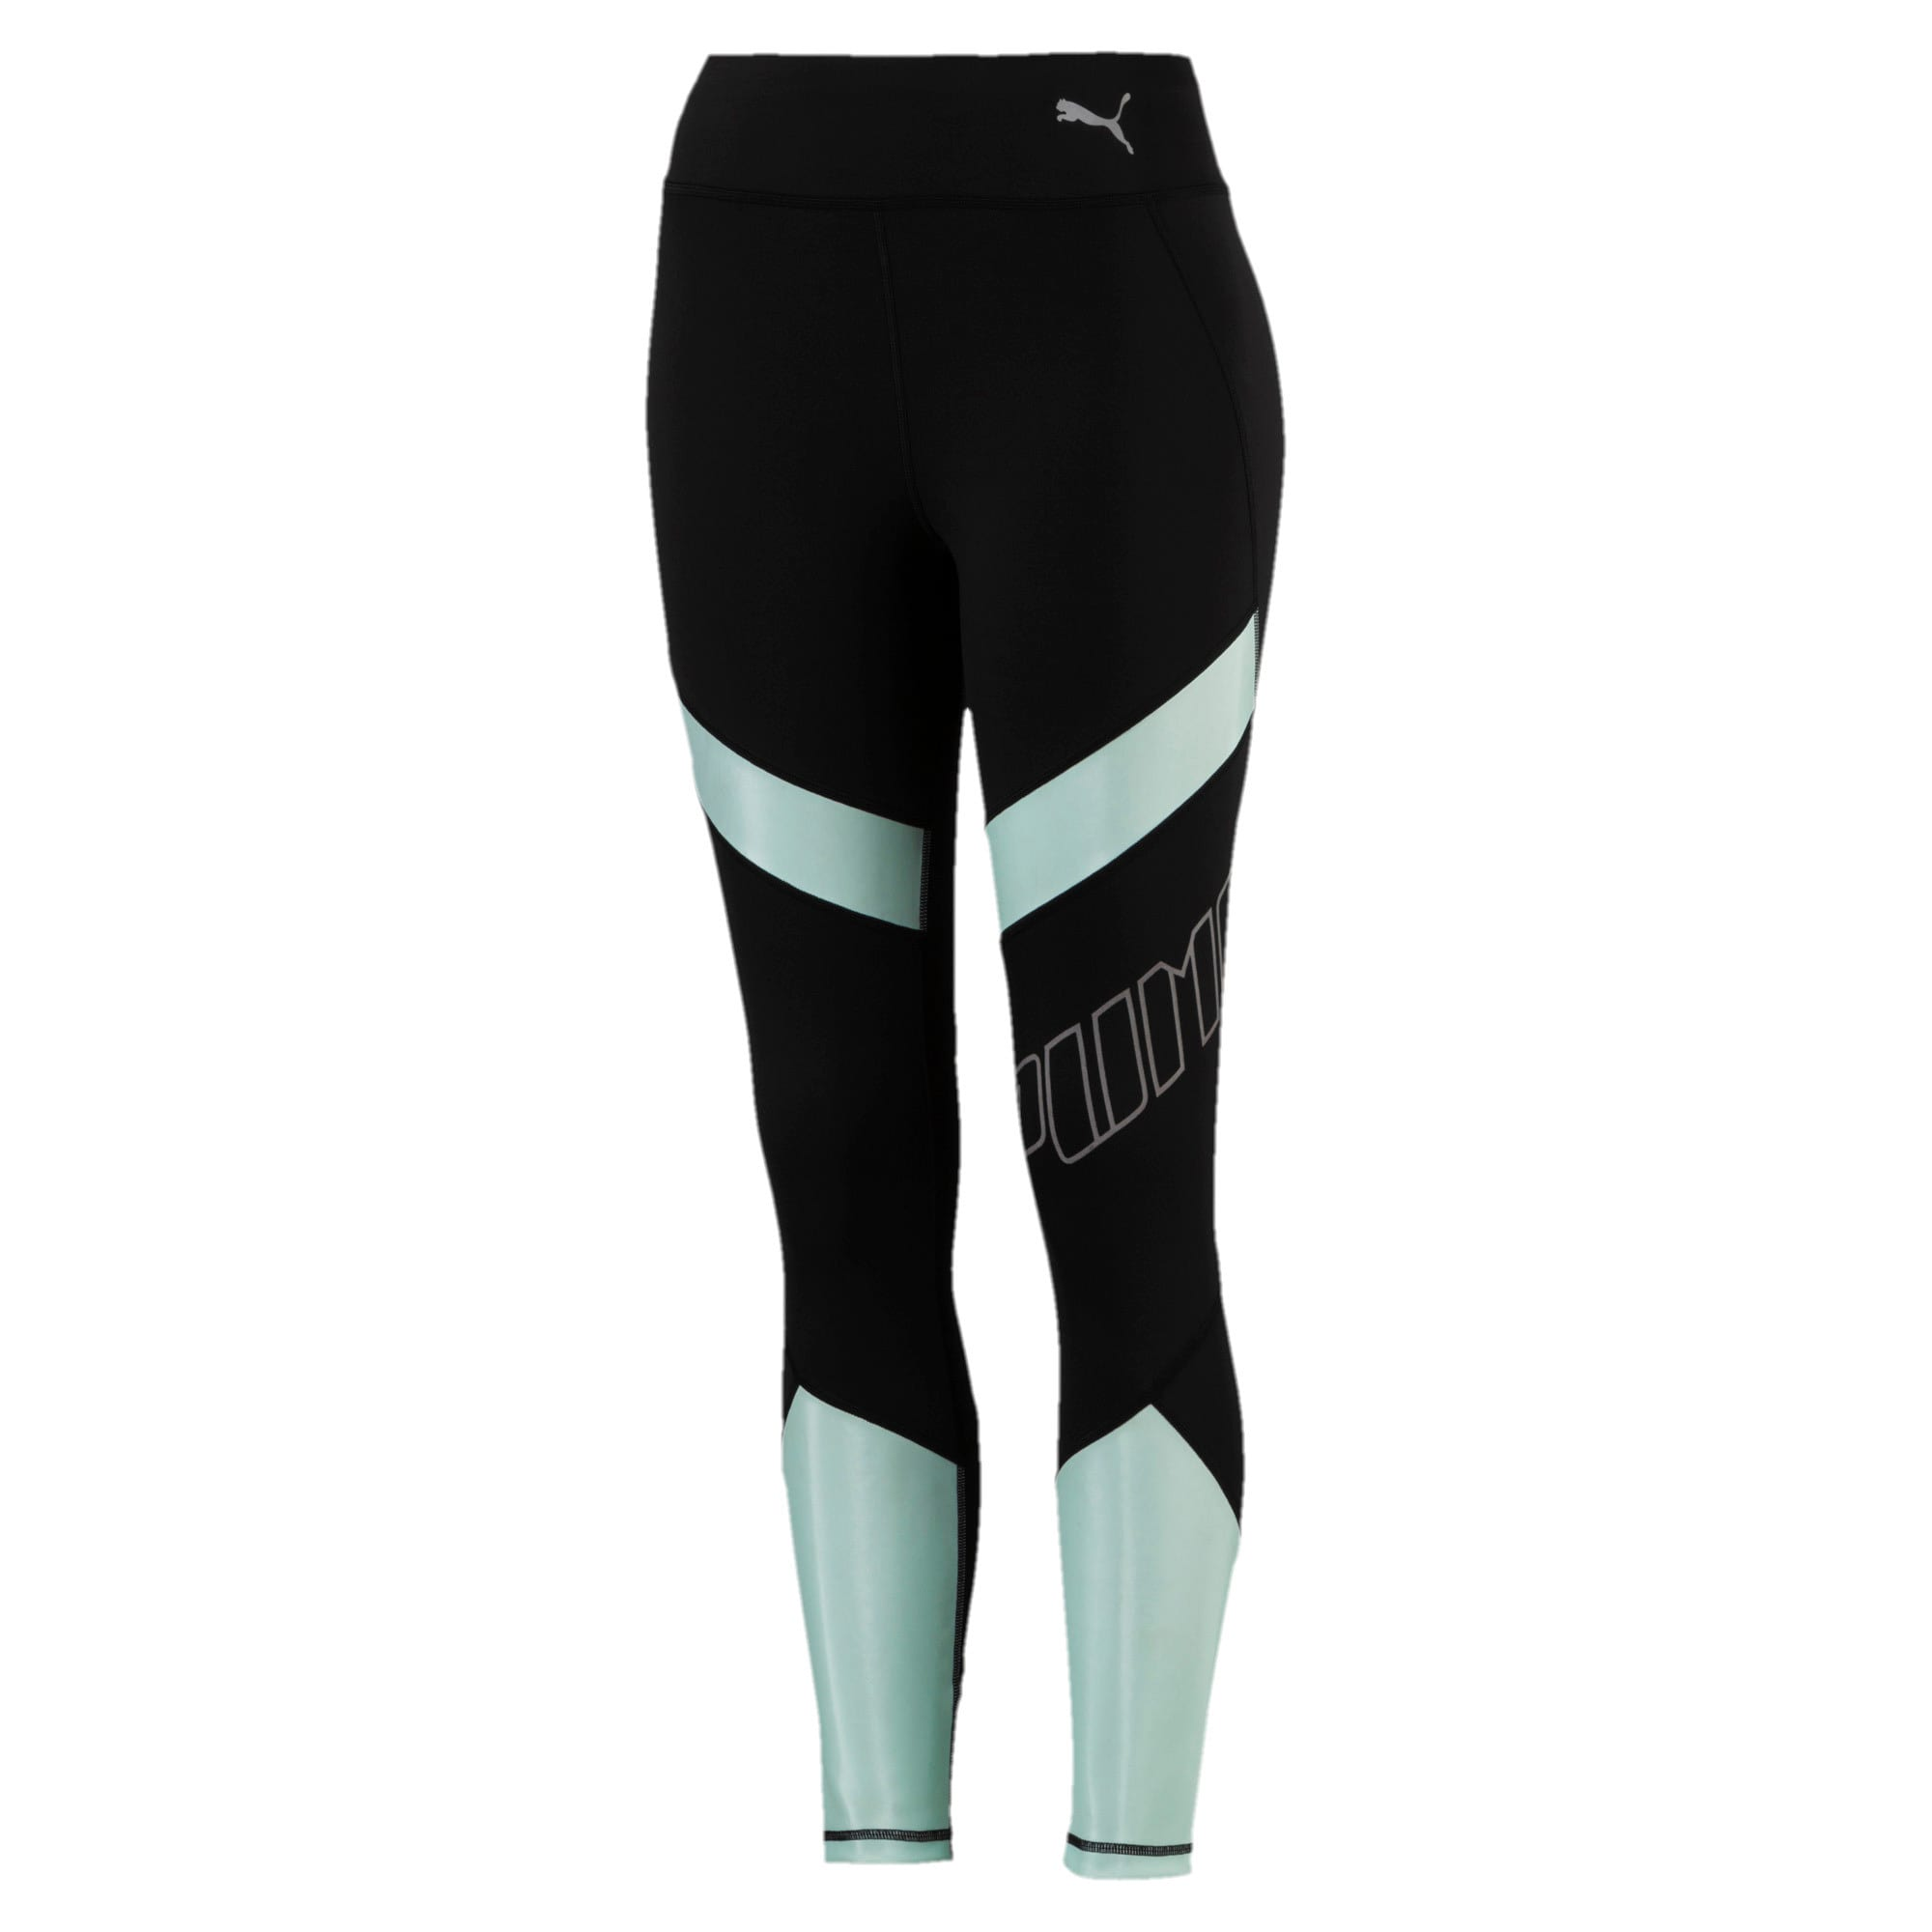 Thumbnail 4 of Elite Women's Running Leggings, Puma Black-Fair Aqua, medium-SEA